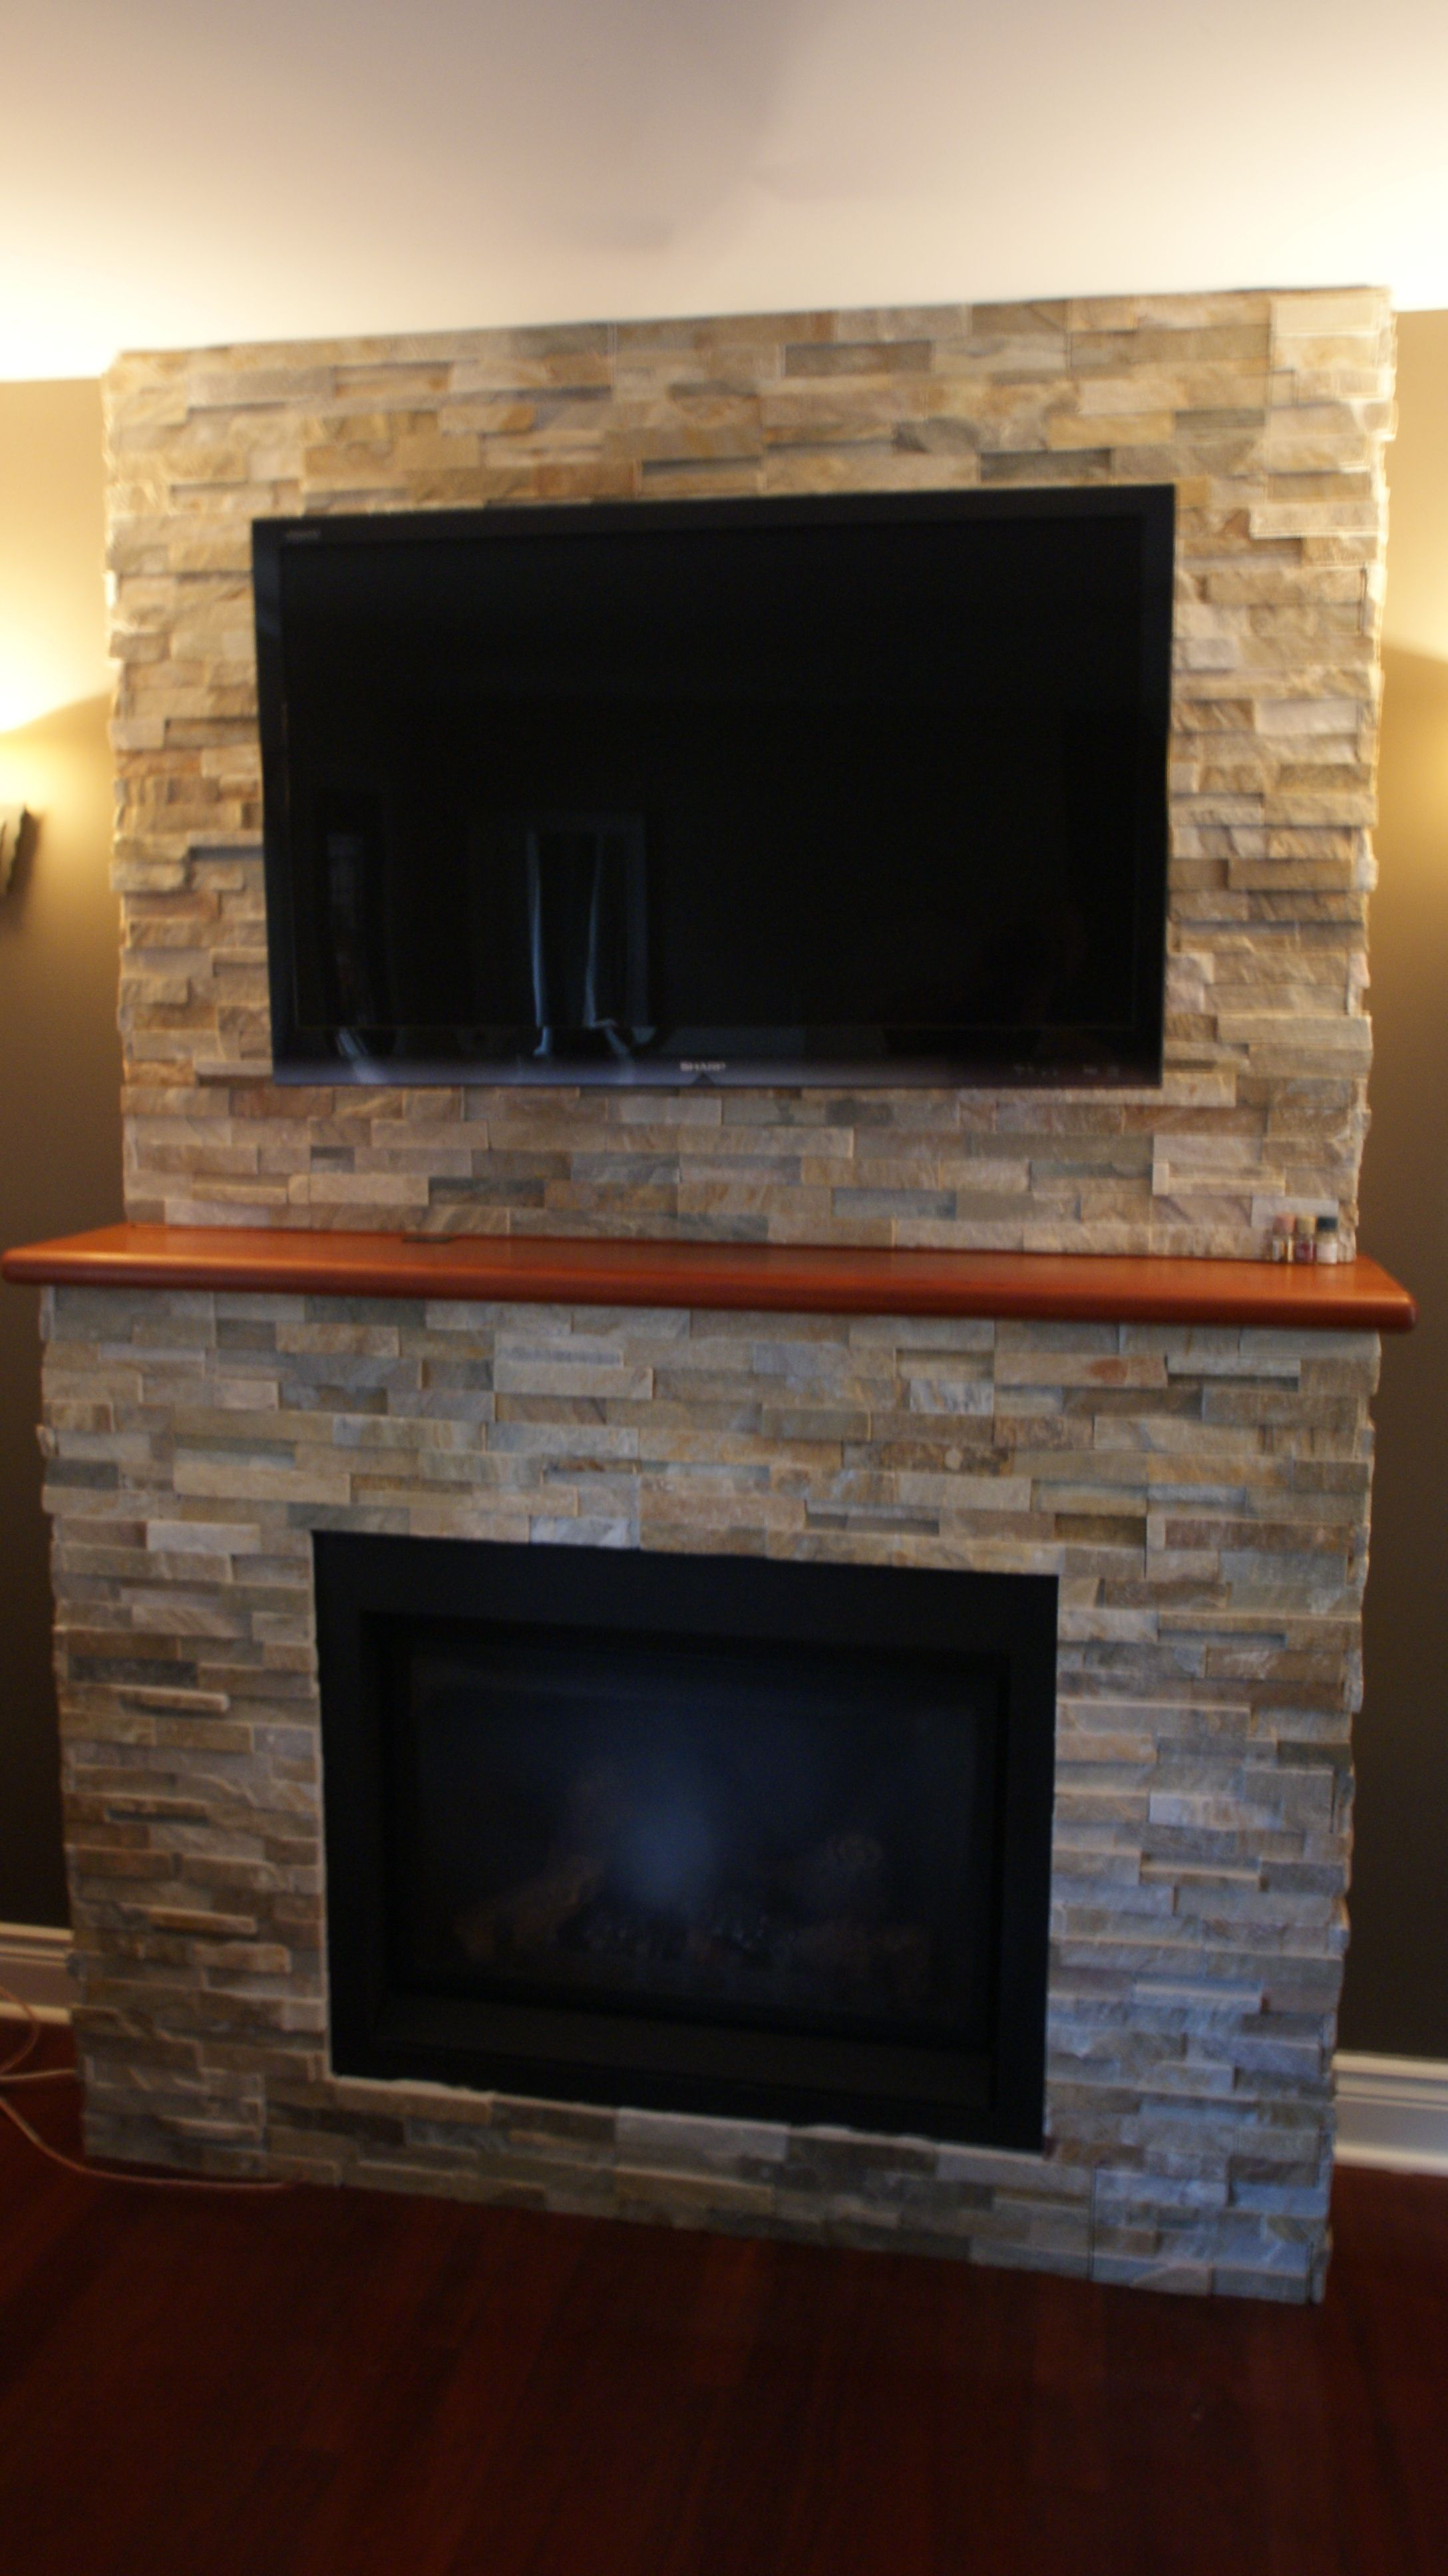 Natural Stone Fireplace Tv Mounted Over Fieplace Gas Fireplace Natural Stone Fireplaces Fireplace Gas Fireplace